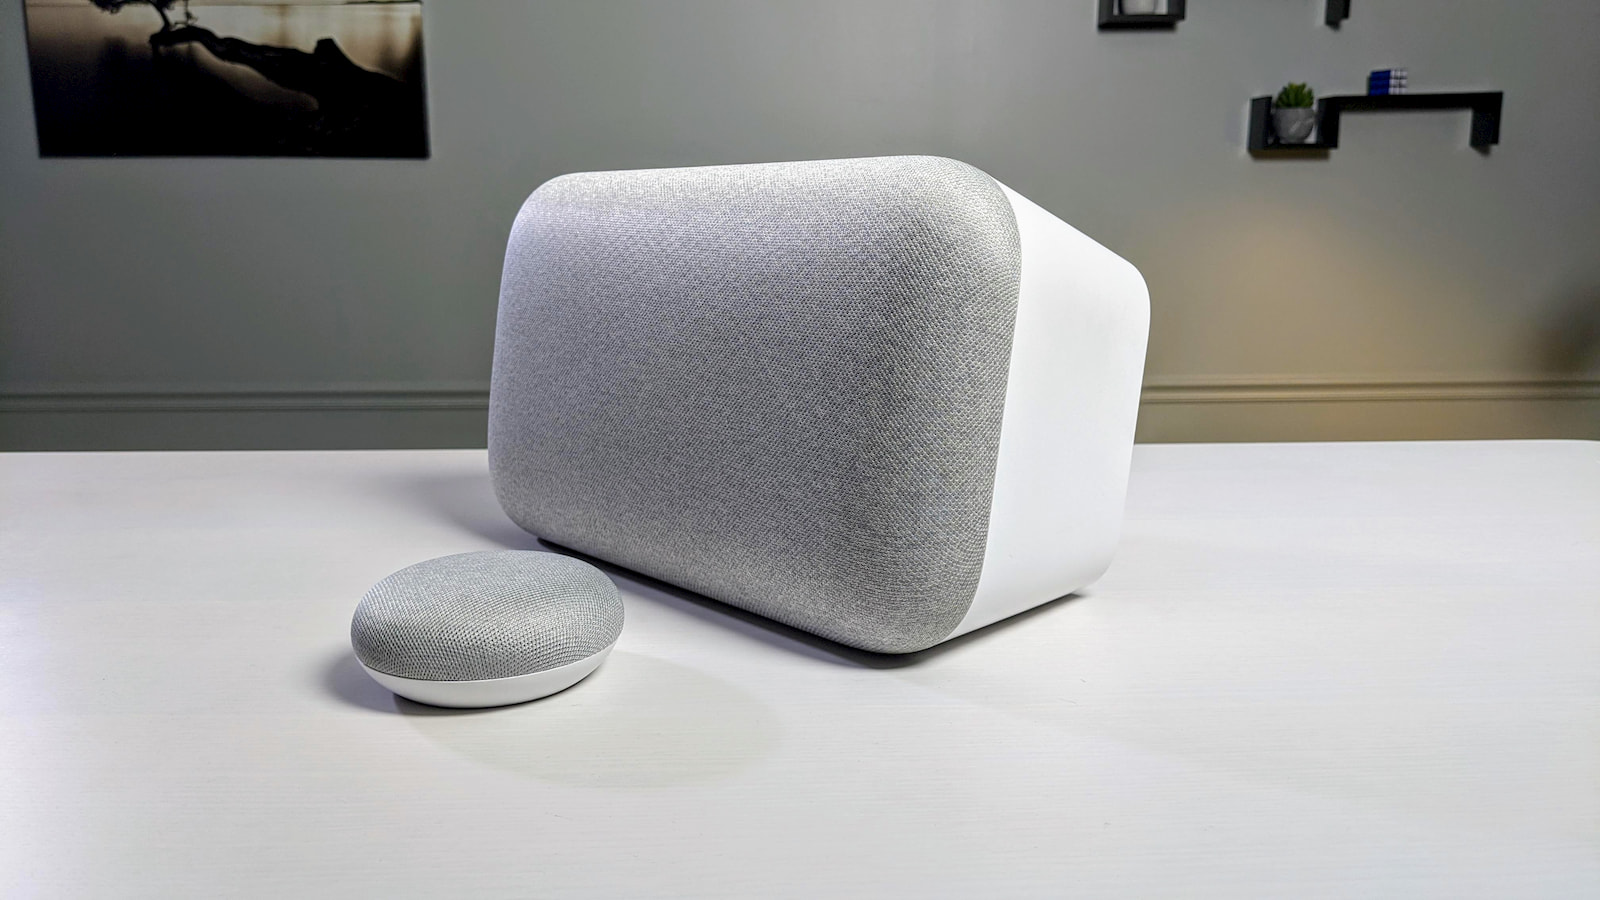 Deal Alert: Google Home Max and Mini Bundle are cheaper than ever at $188